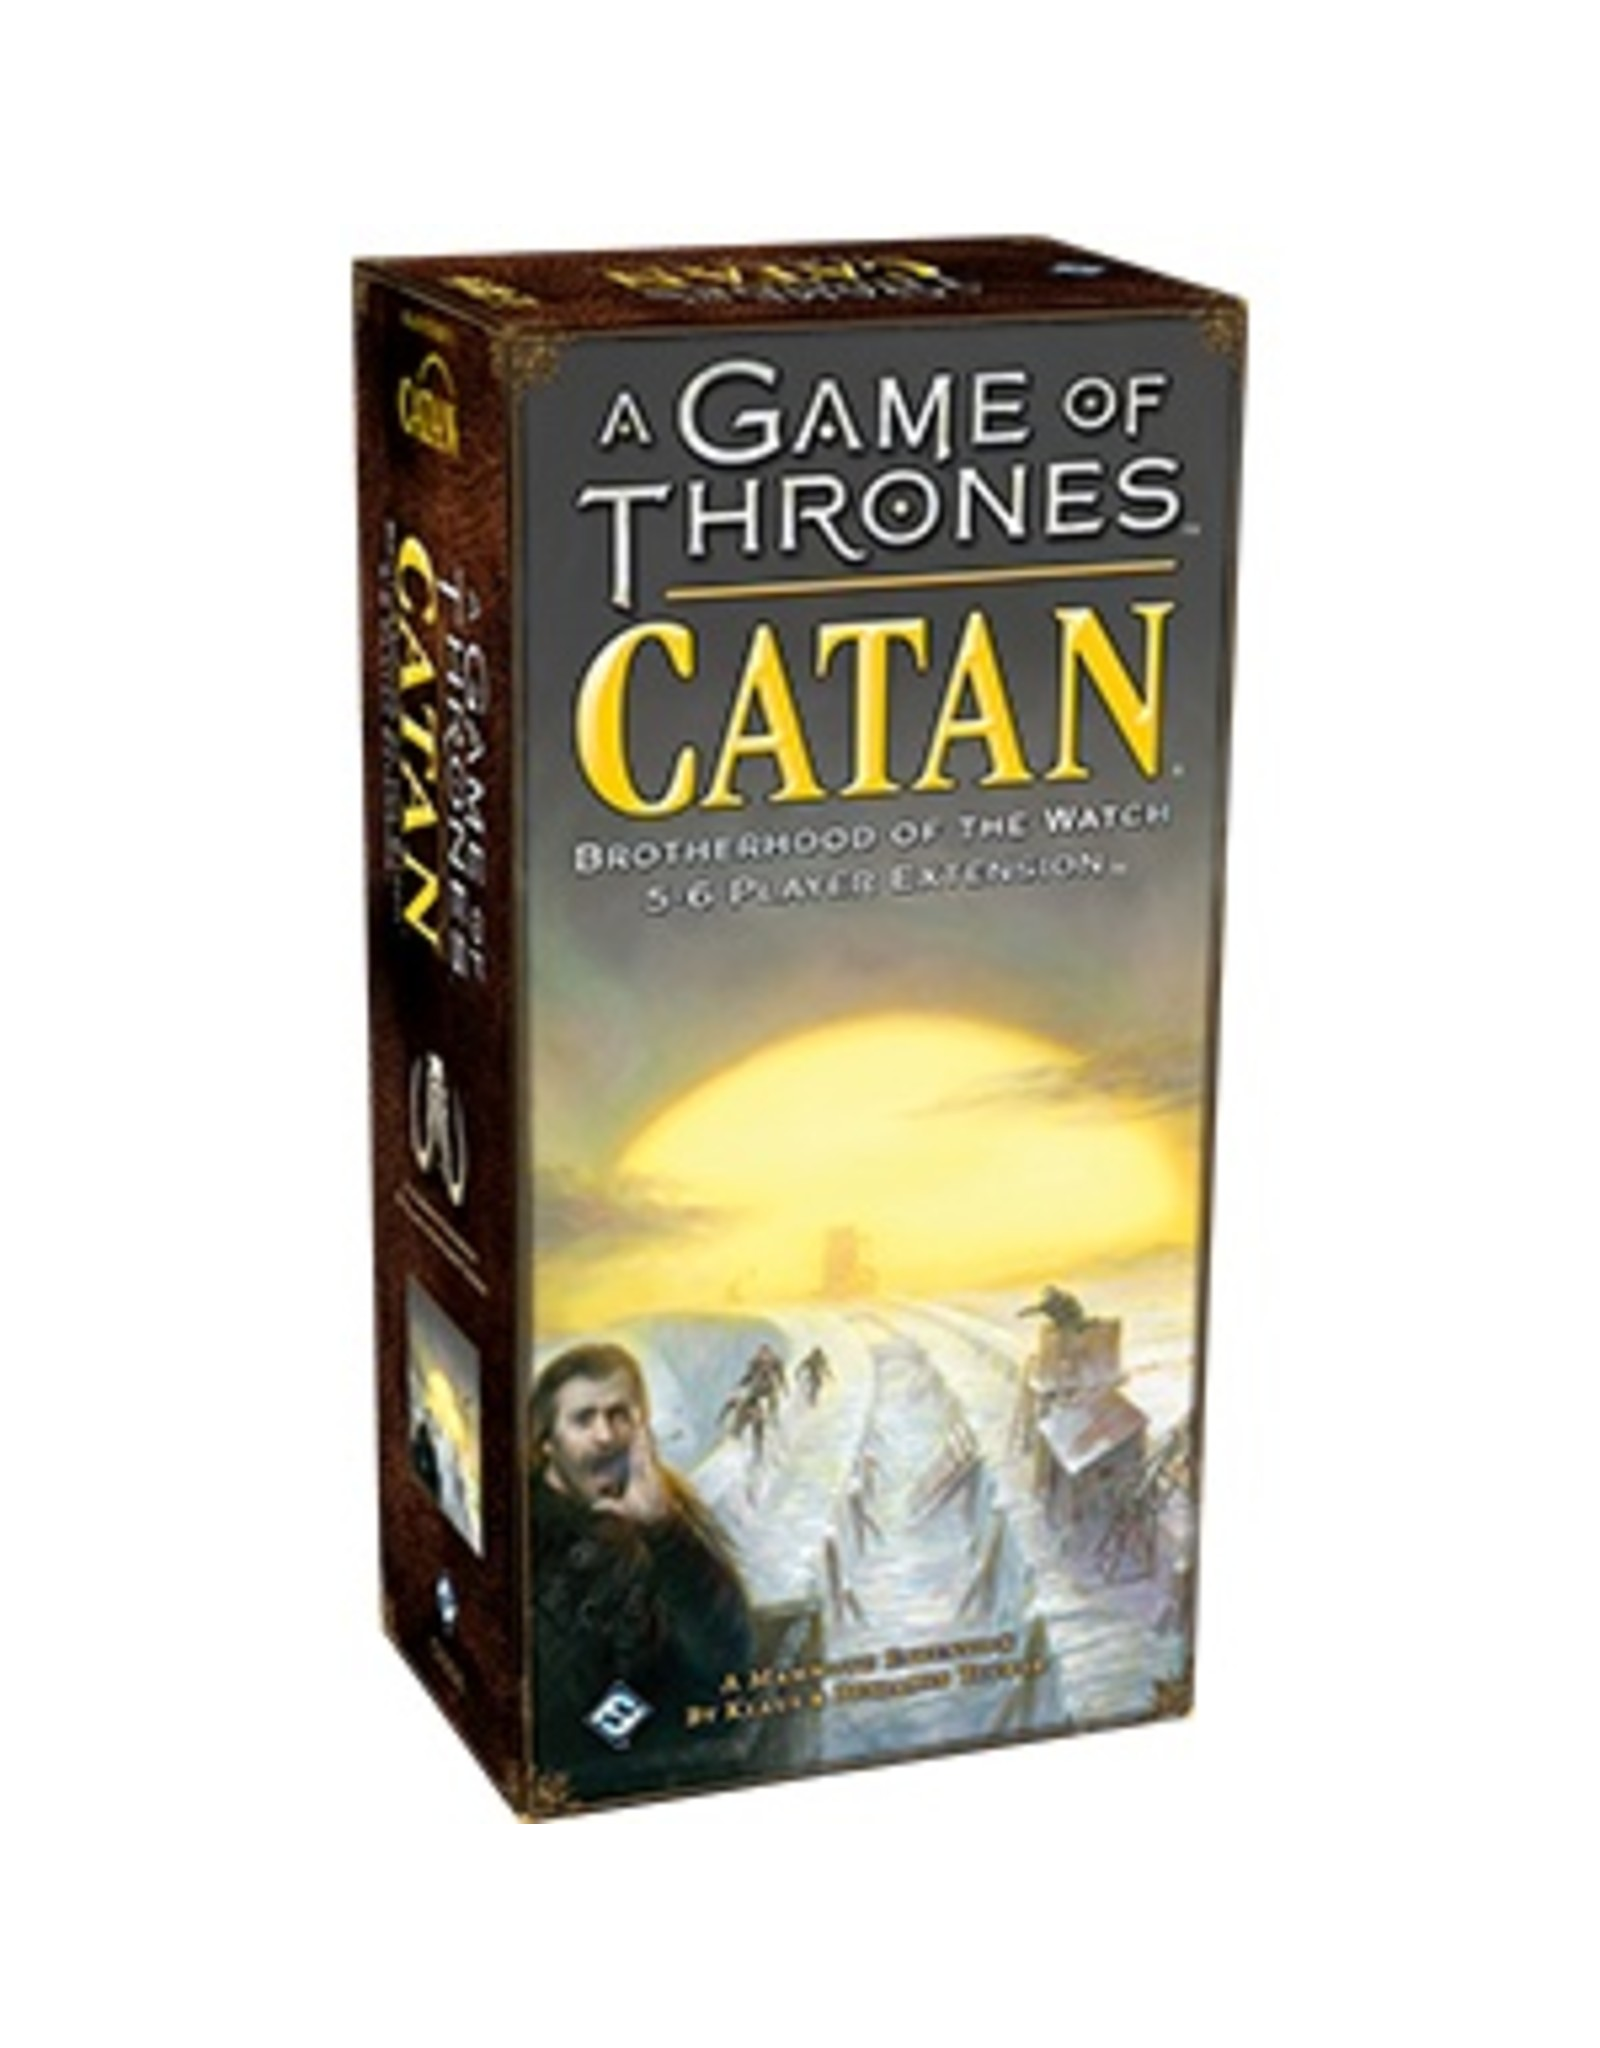 Catan CATAN: A GAME OF THRONES 5-6 PLAYER EXPANSION